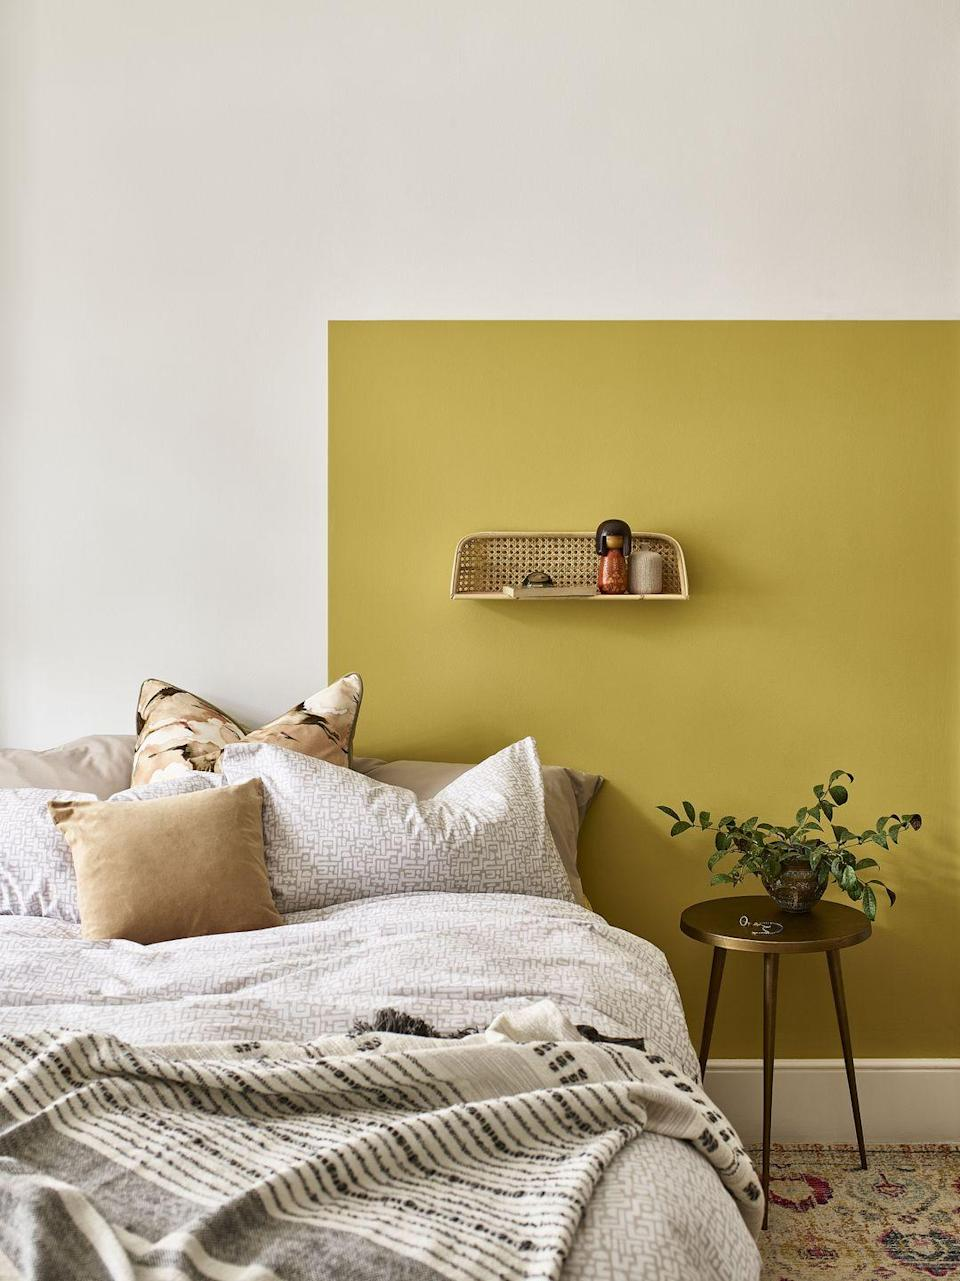 """<p>Most commonly, a feature wall is used to create more of a focal point and will make the perfect backdrop to a bed.</p><p>The experts at Dulux explain: 'If you have architectural elements on an alternative wall, such as a fireplace or the entrance to an en-suite or <a href=""""https://www.housebeautiful.com/uk/decorate/bedroom/a30966899/walk-in-wardrobe-ideas/"""" rel=""""nofollow noopener"""" target=""""_blank"""" data-ylk=""""slk:walk-in wardrobe"""" class=""""link rapid-noclick-resp"""">walk-in wardrobe</a>, this could lend itself perfectly to becoming the accent wall. Feature walls can be used to add depth and the illusion of space to smaller rooms, so experiment with painting an accent wall at the far end or on the side of the bed to maximise your room's potential.'</p>"""